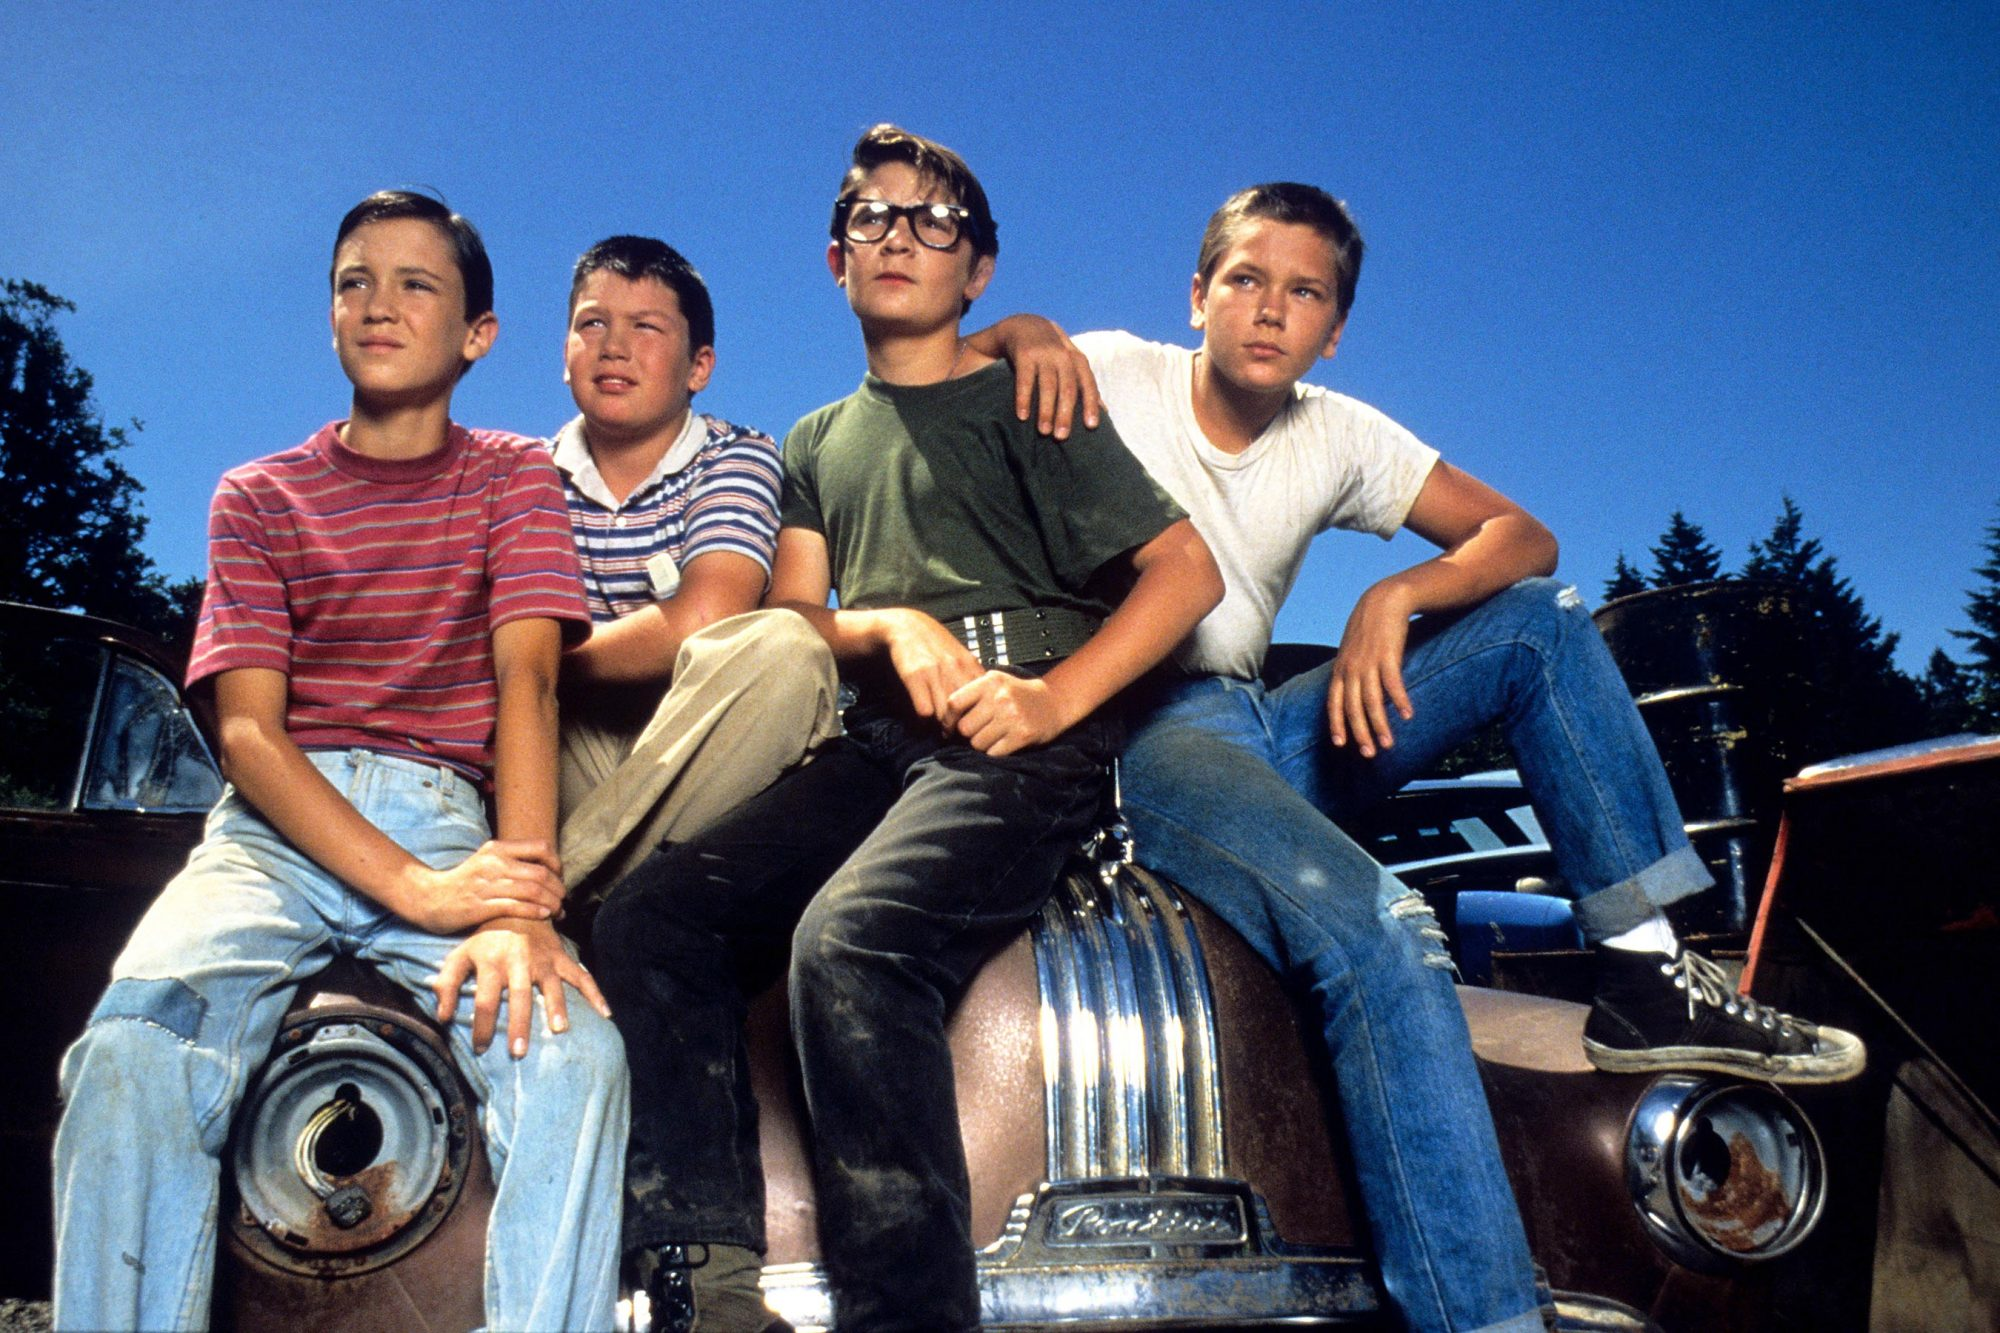 7. Stand by Me (1986)